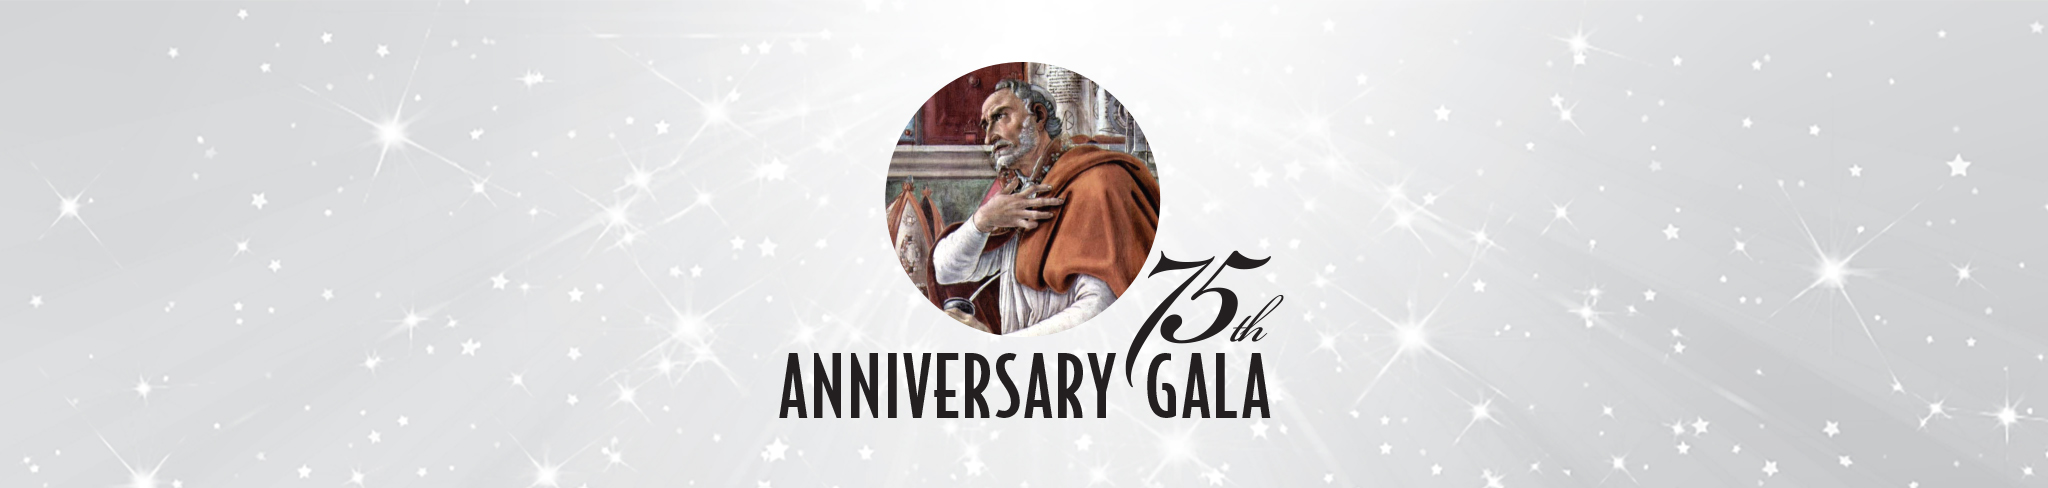 Marylake_75th_Anniversary_Gala_banner